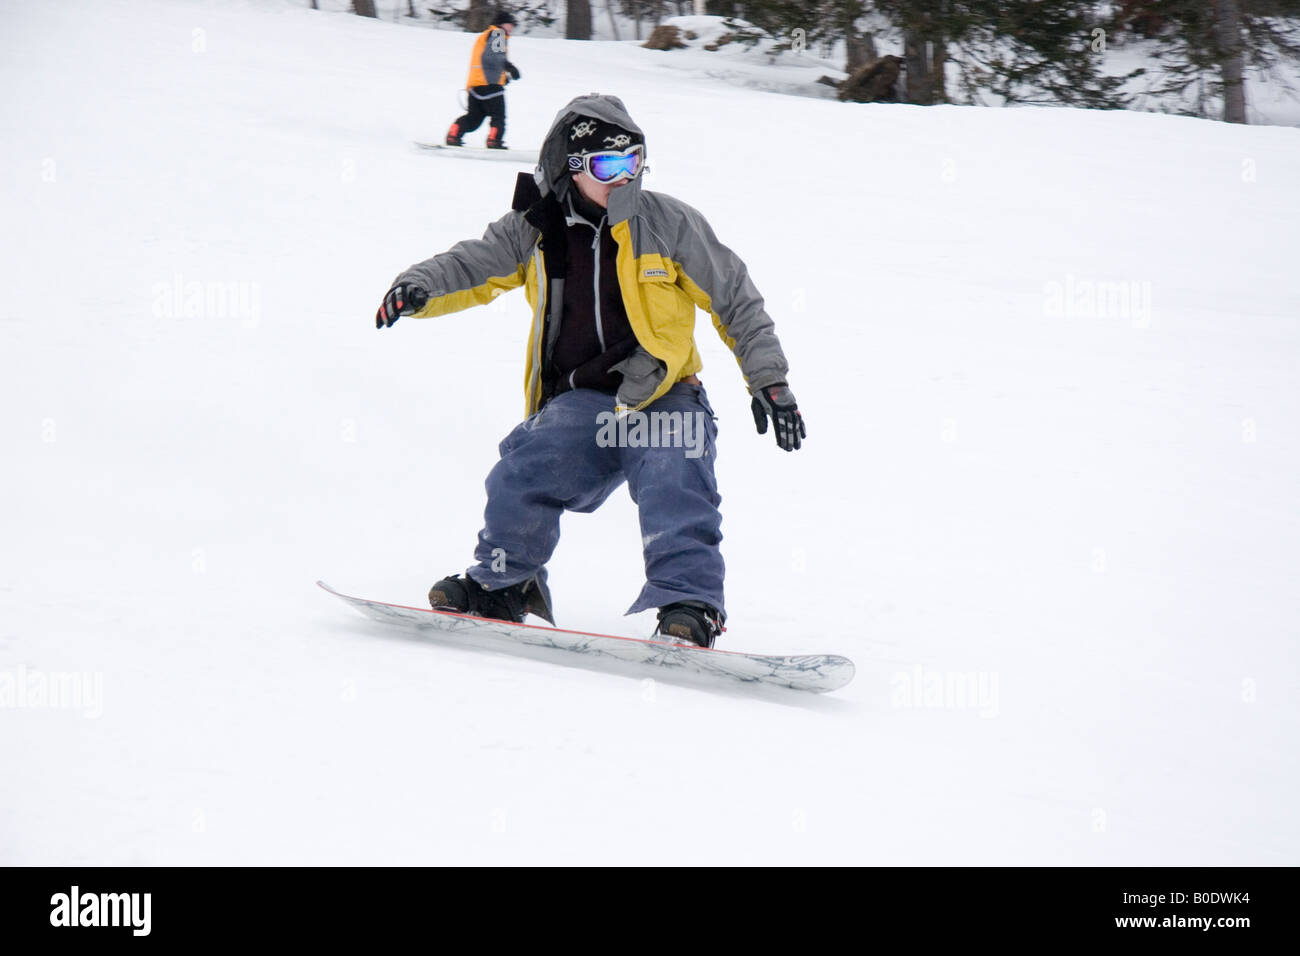 A young man on snowboard going down the hill in Sheregesh (Russia, Siberia) - Stock Image